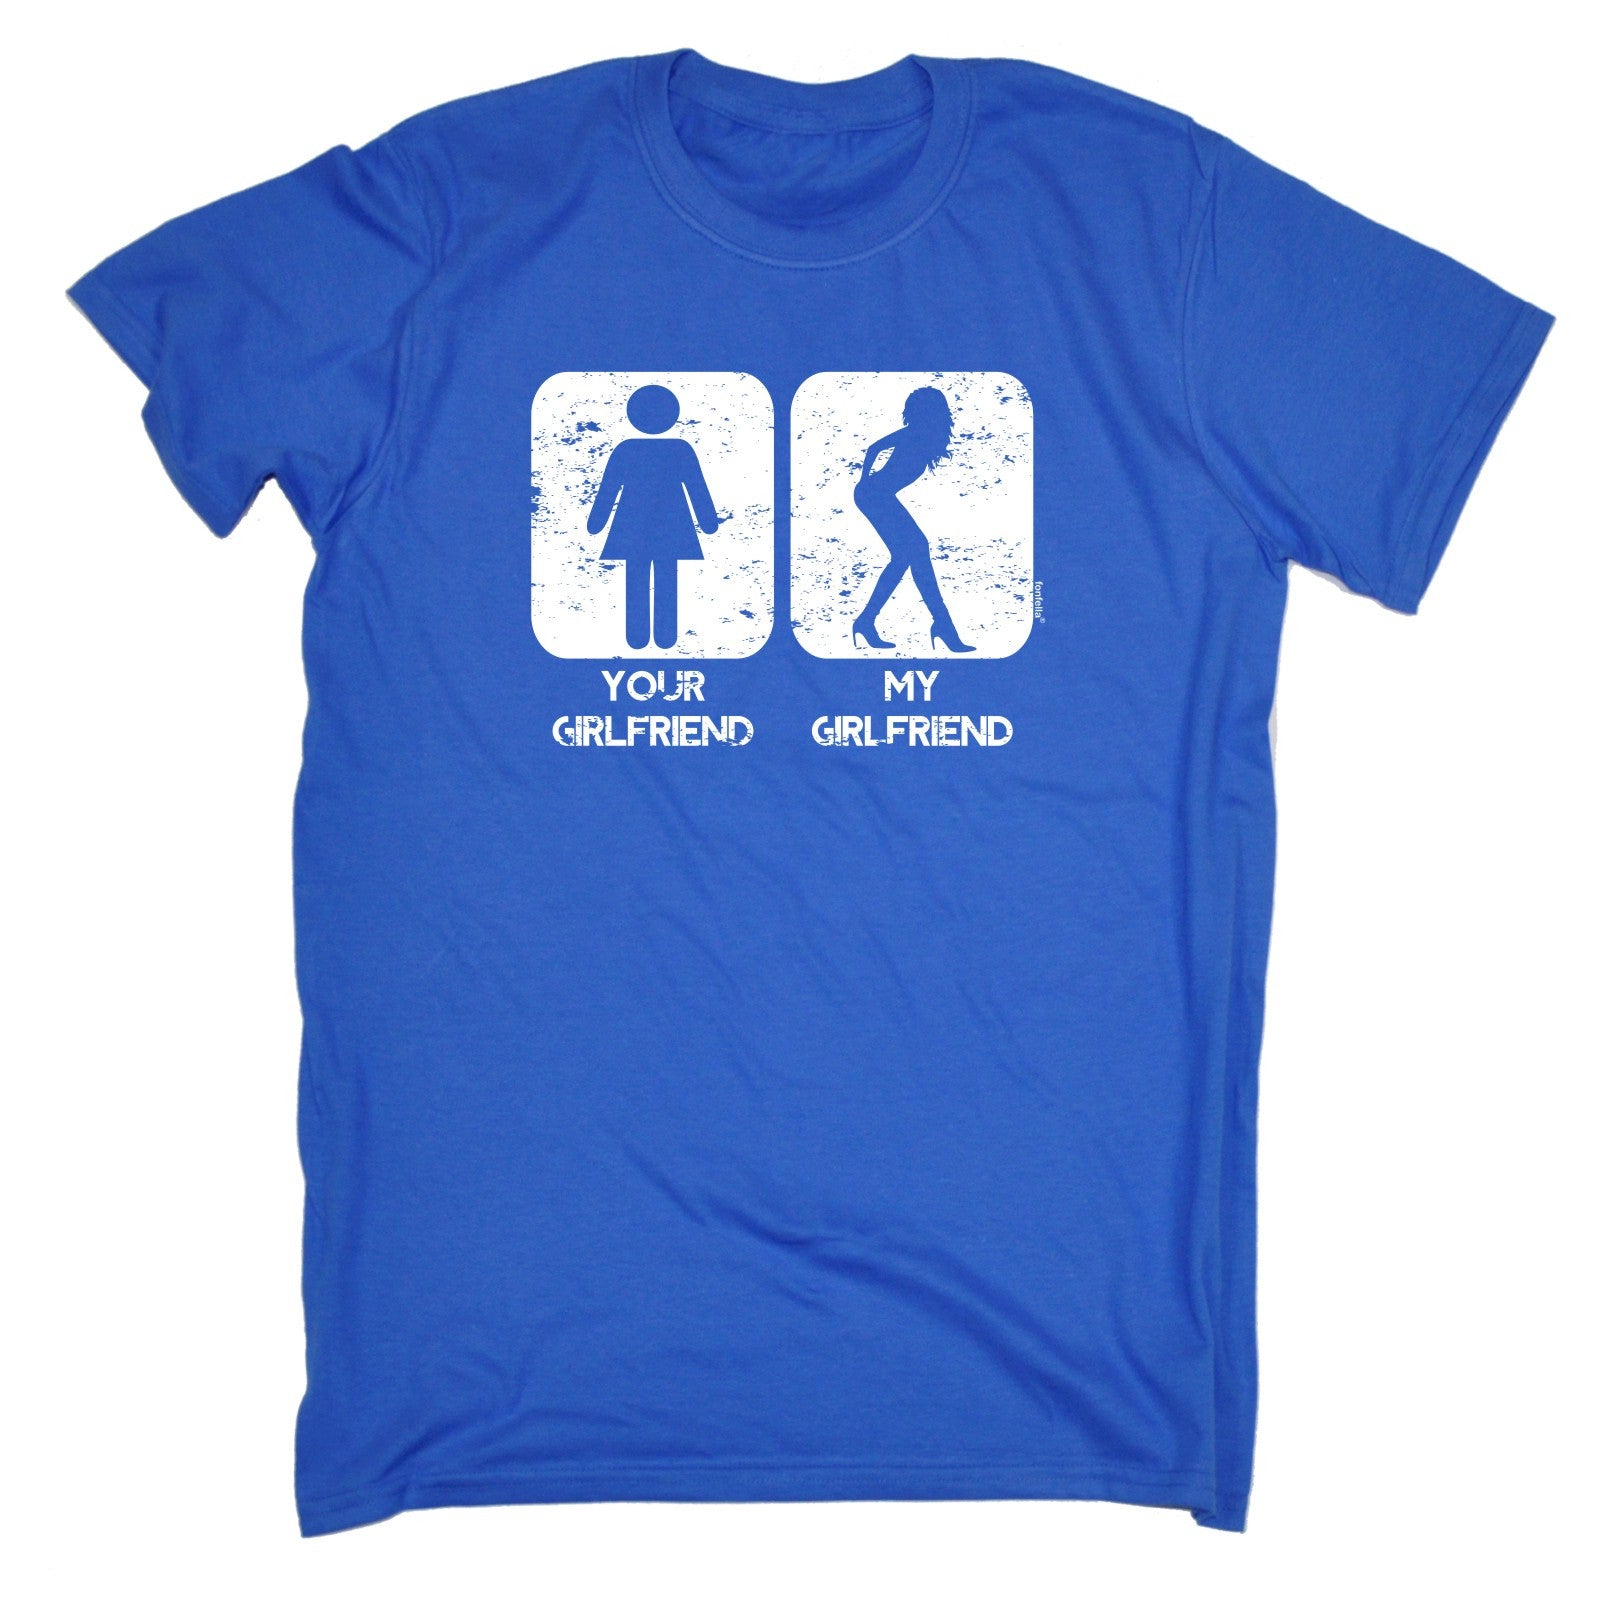 Buy 123t Mens Your Girlfriend My Funny T Shirt At Shirts Hoodies For Only GBP797